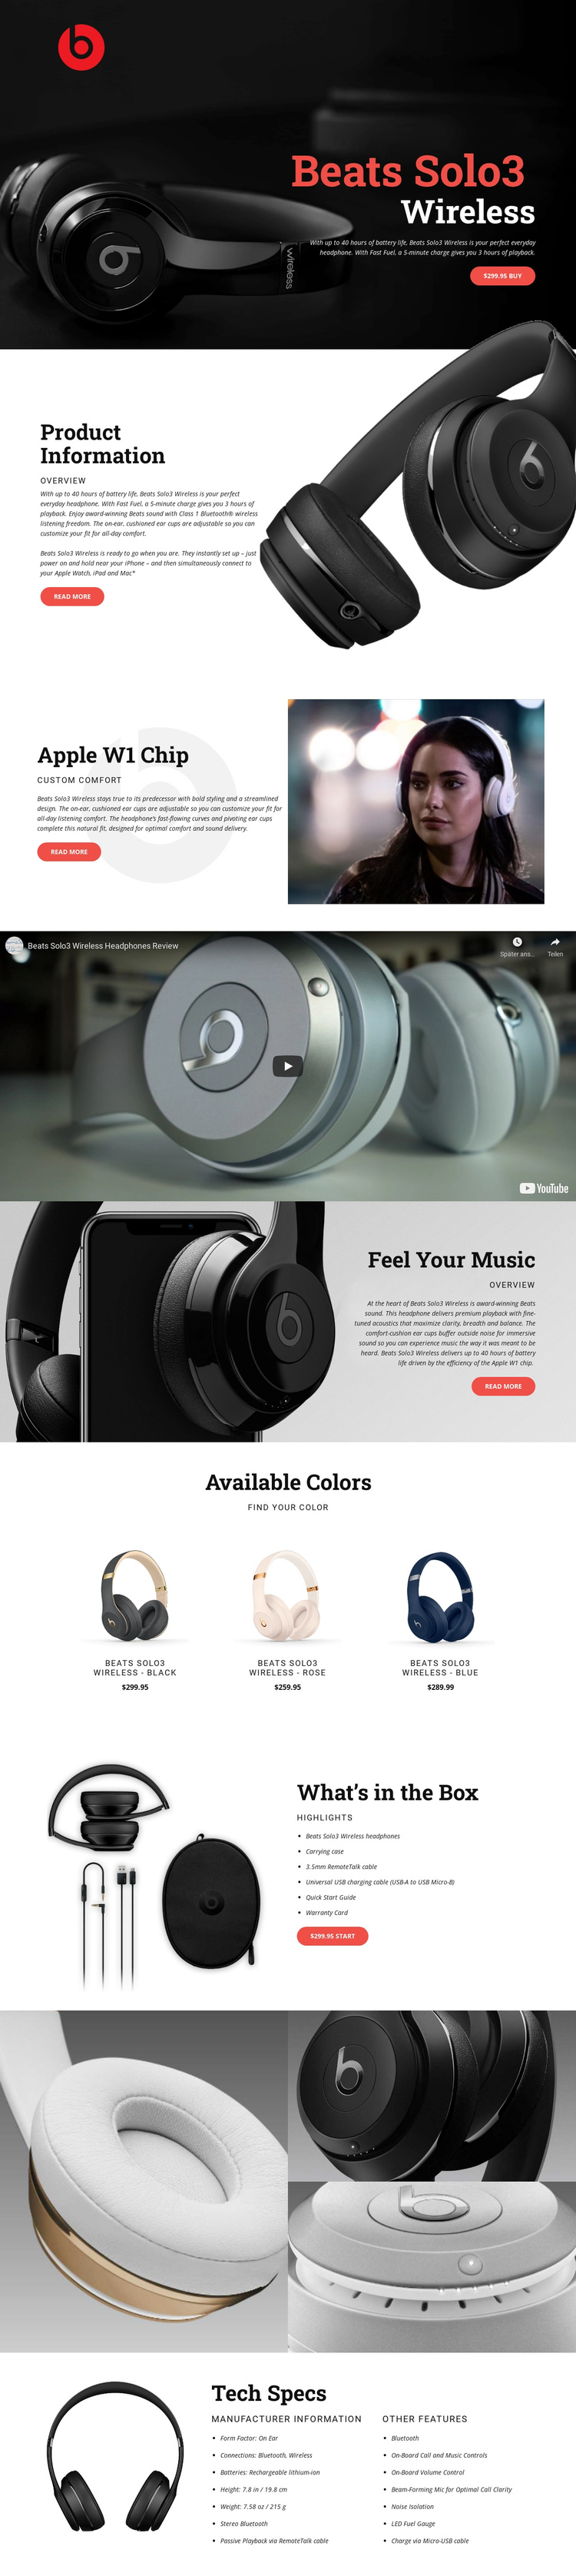 Outstanding quality of music Website Builder Software